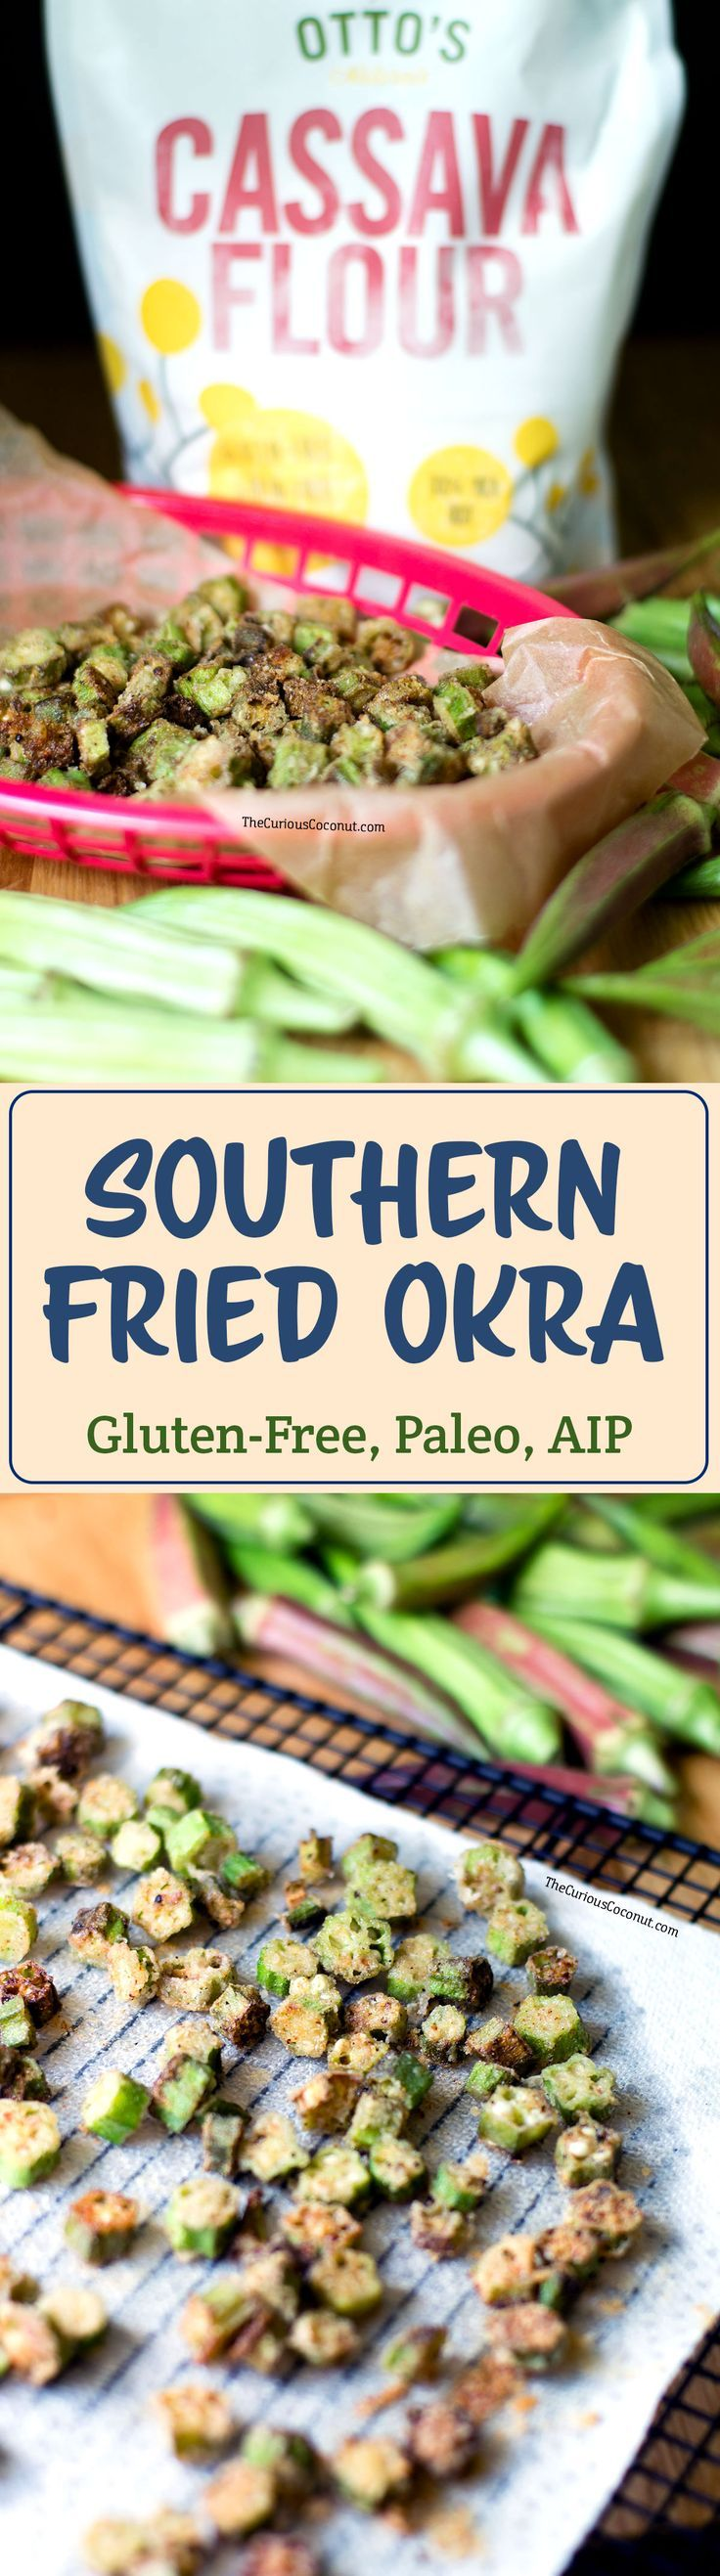 Southern Fried Okra // (Paleo, AIP, Gluten-free, Egg-free, Vegan)// TheCuriousCoconut.com